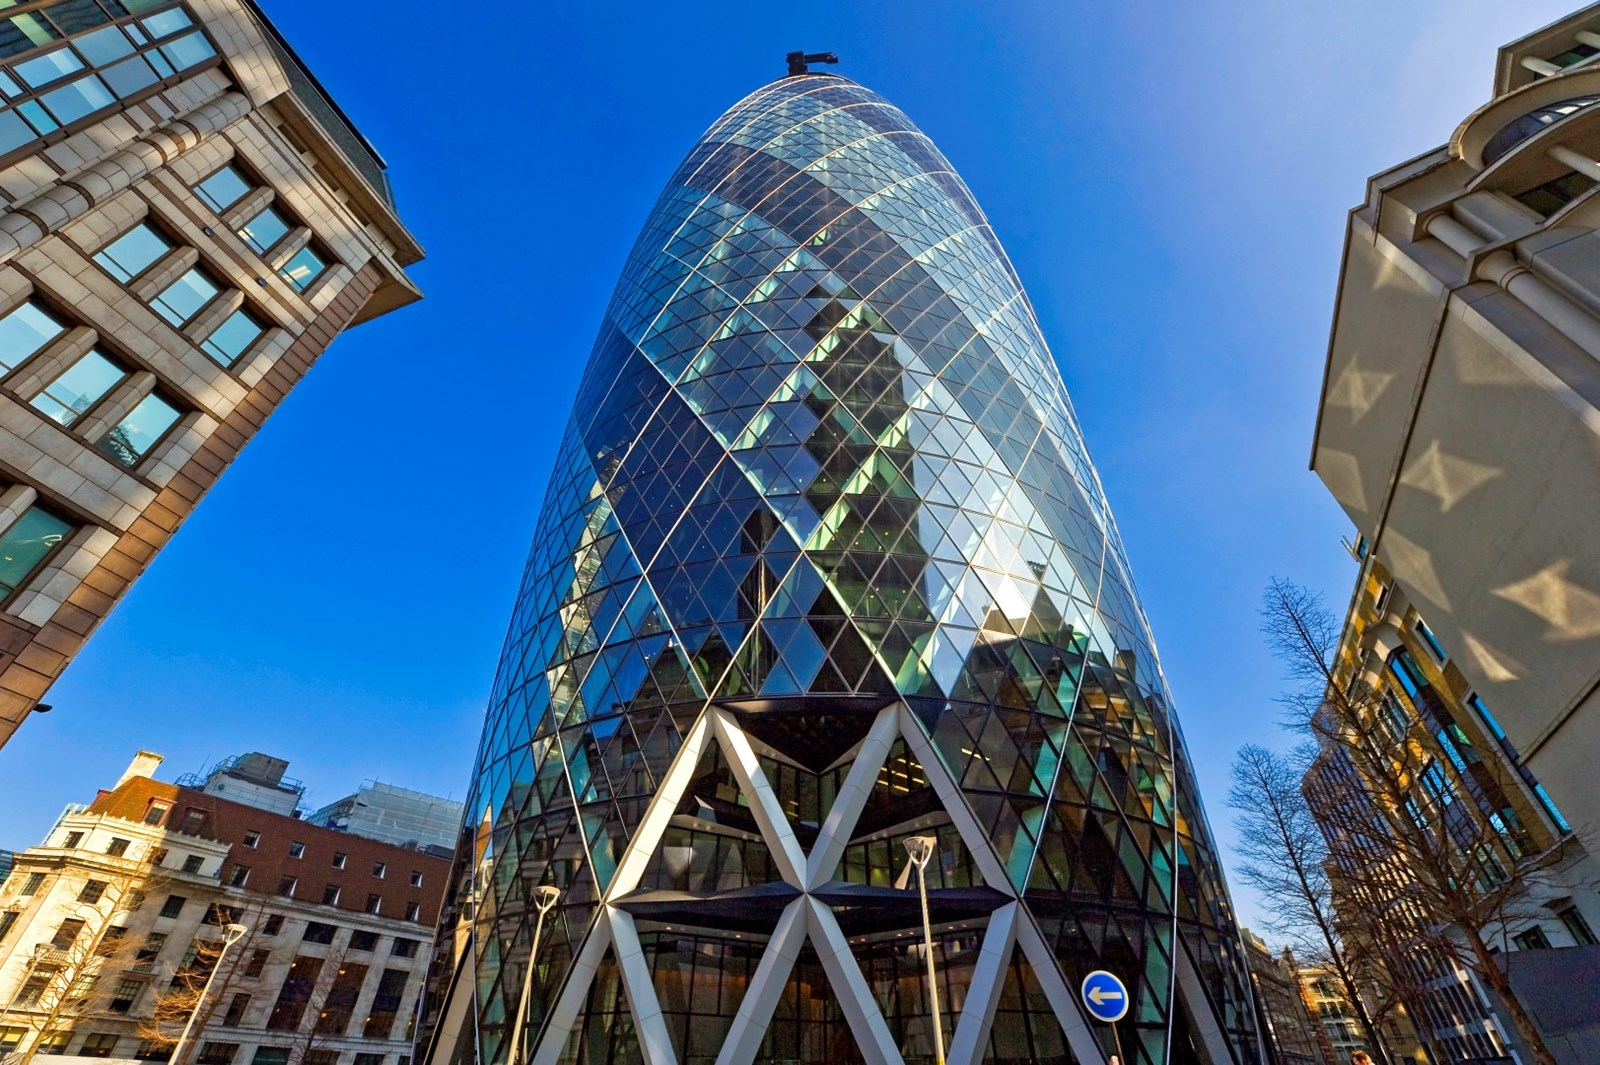 St Mary's Axe